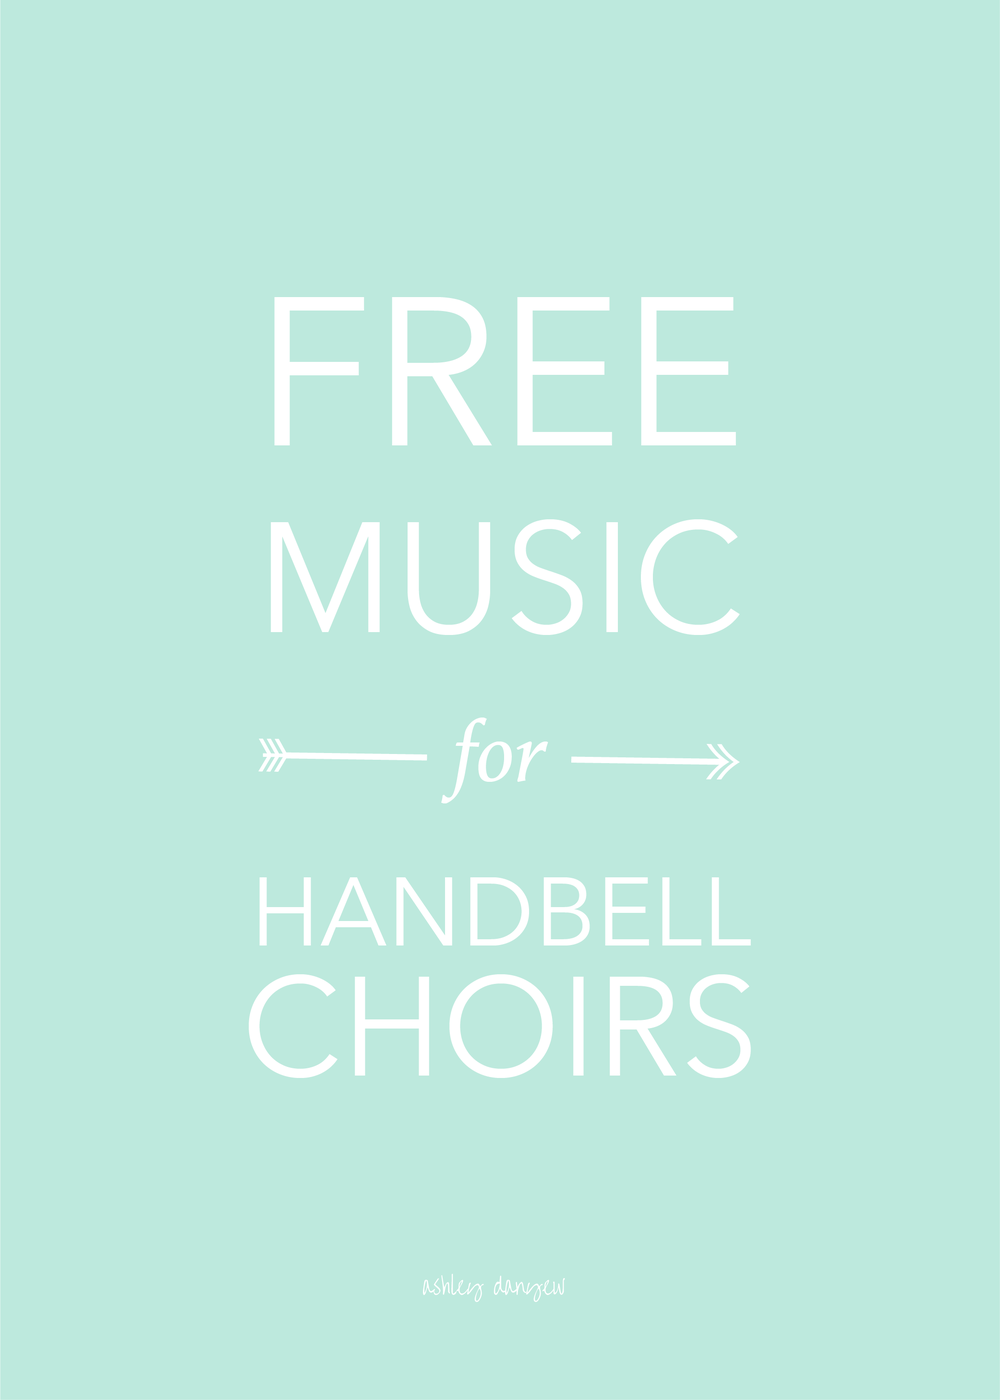 Copy of Free Music for Handbell Choirs